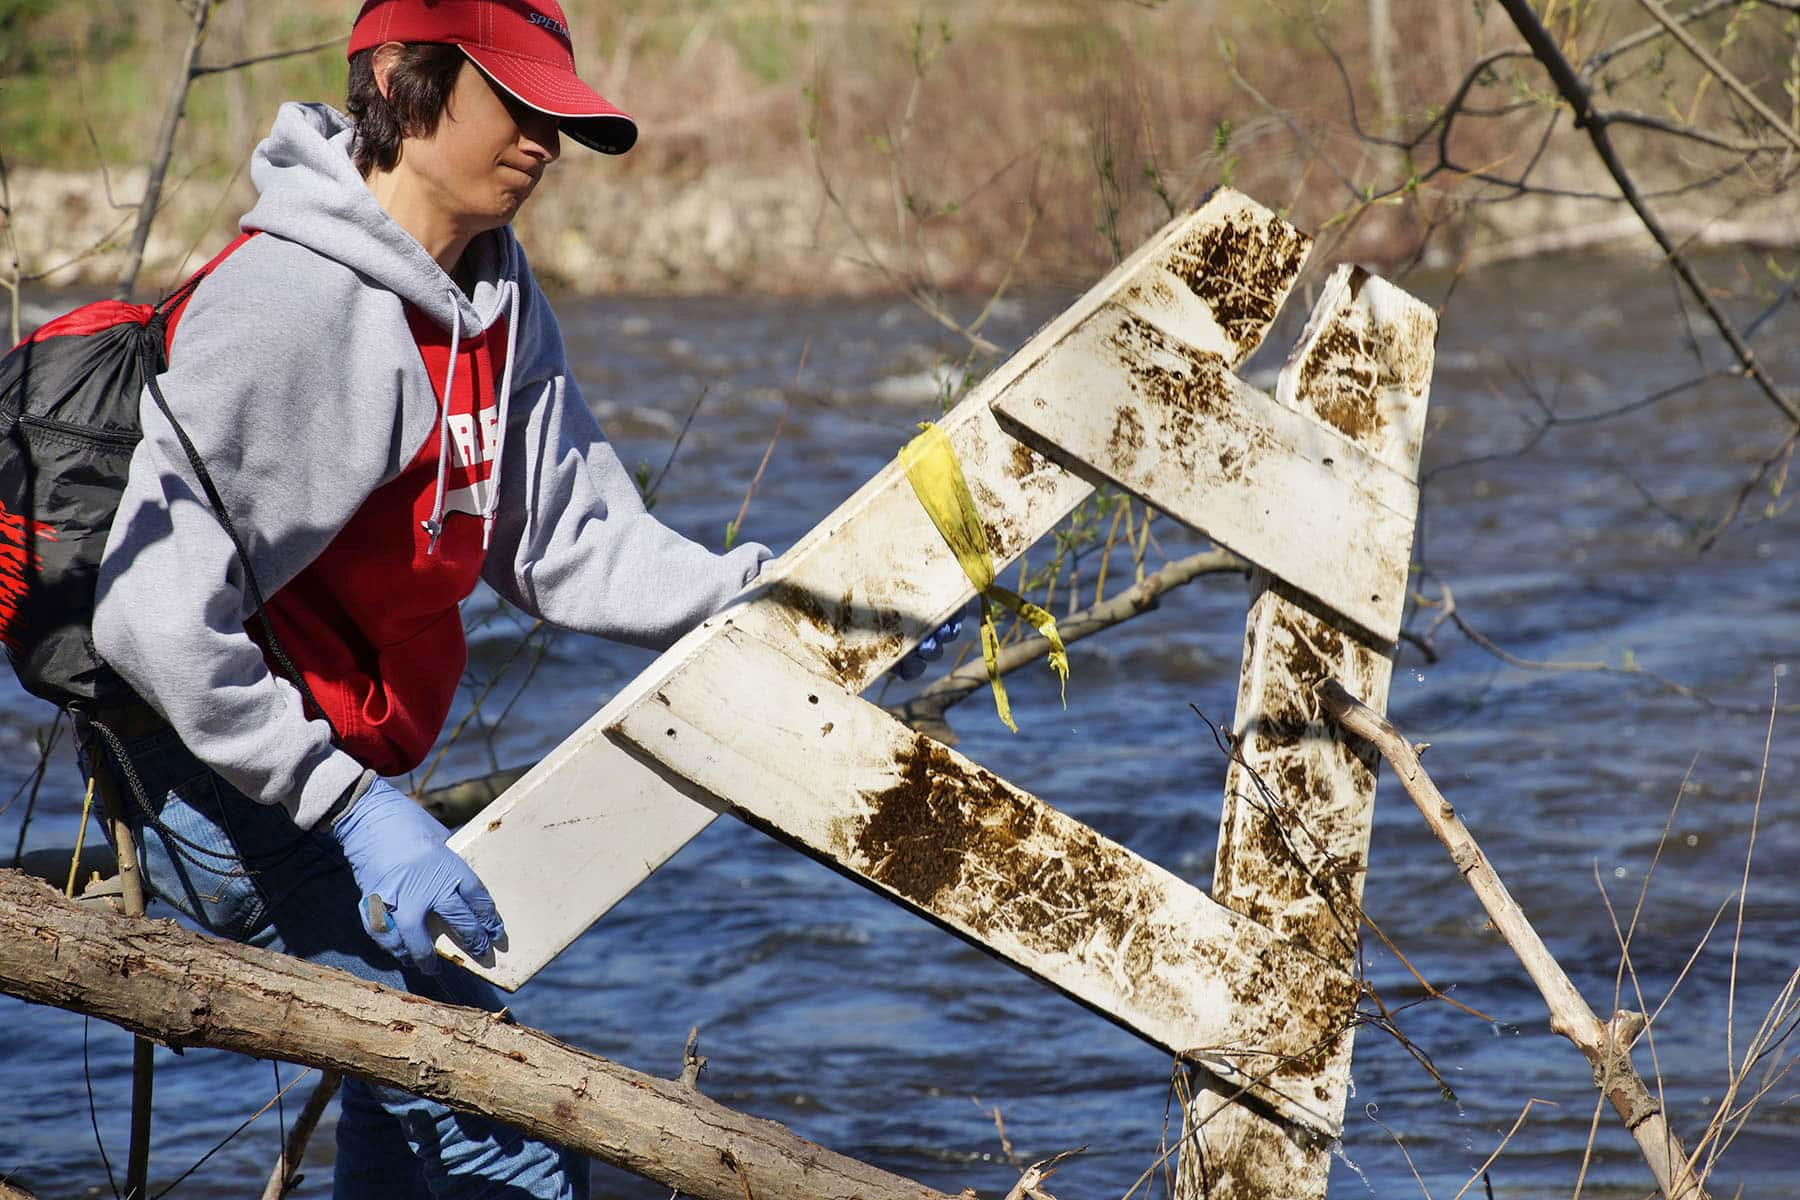 02_042217_riverkeepers_0620